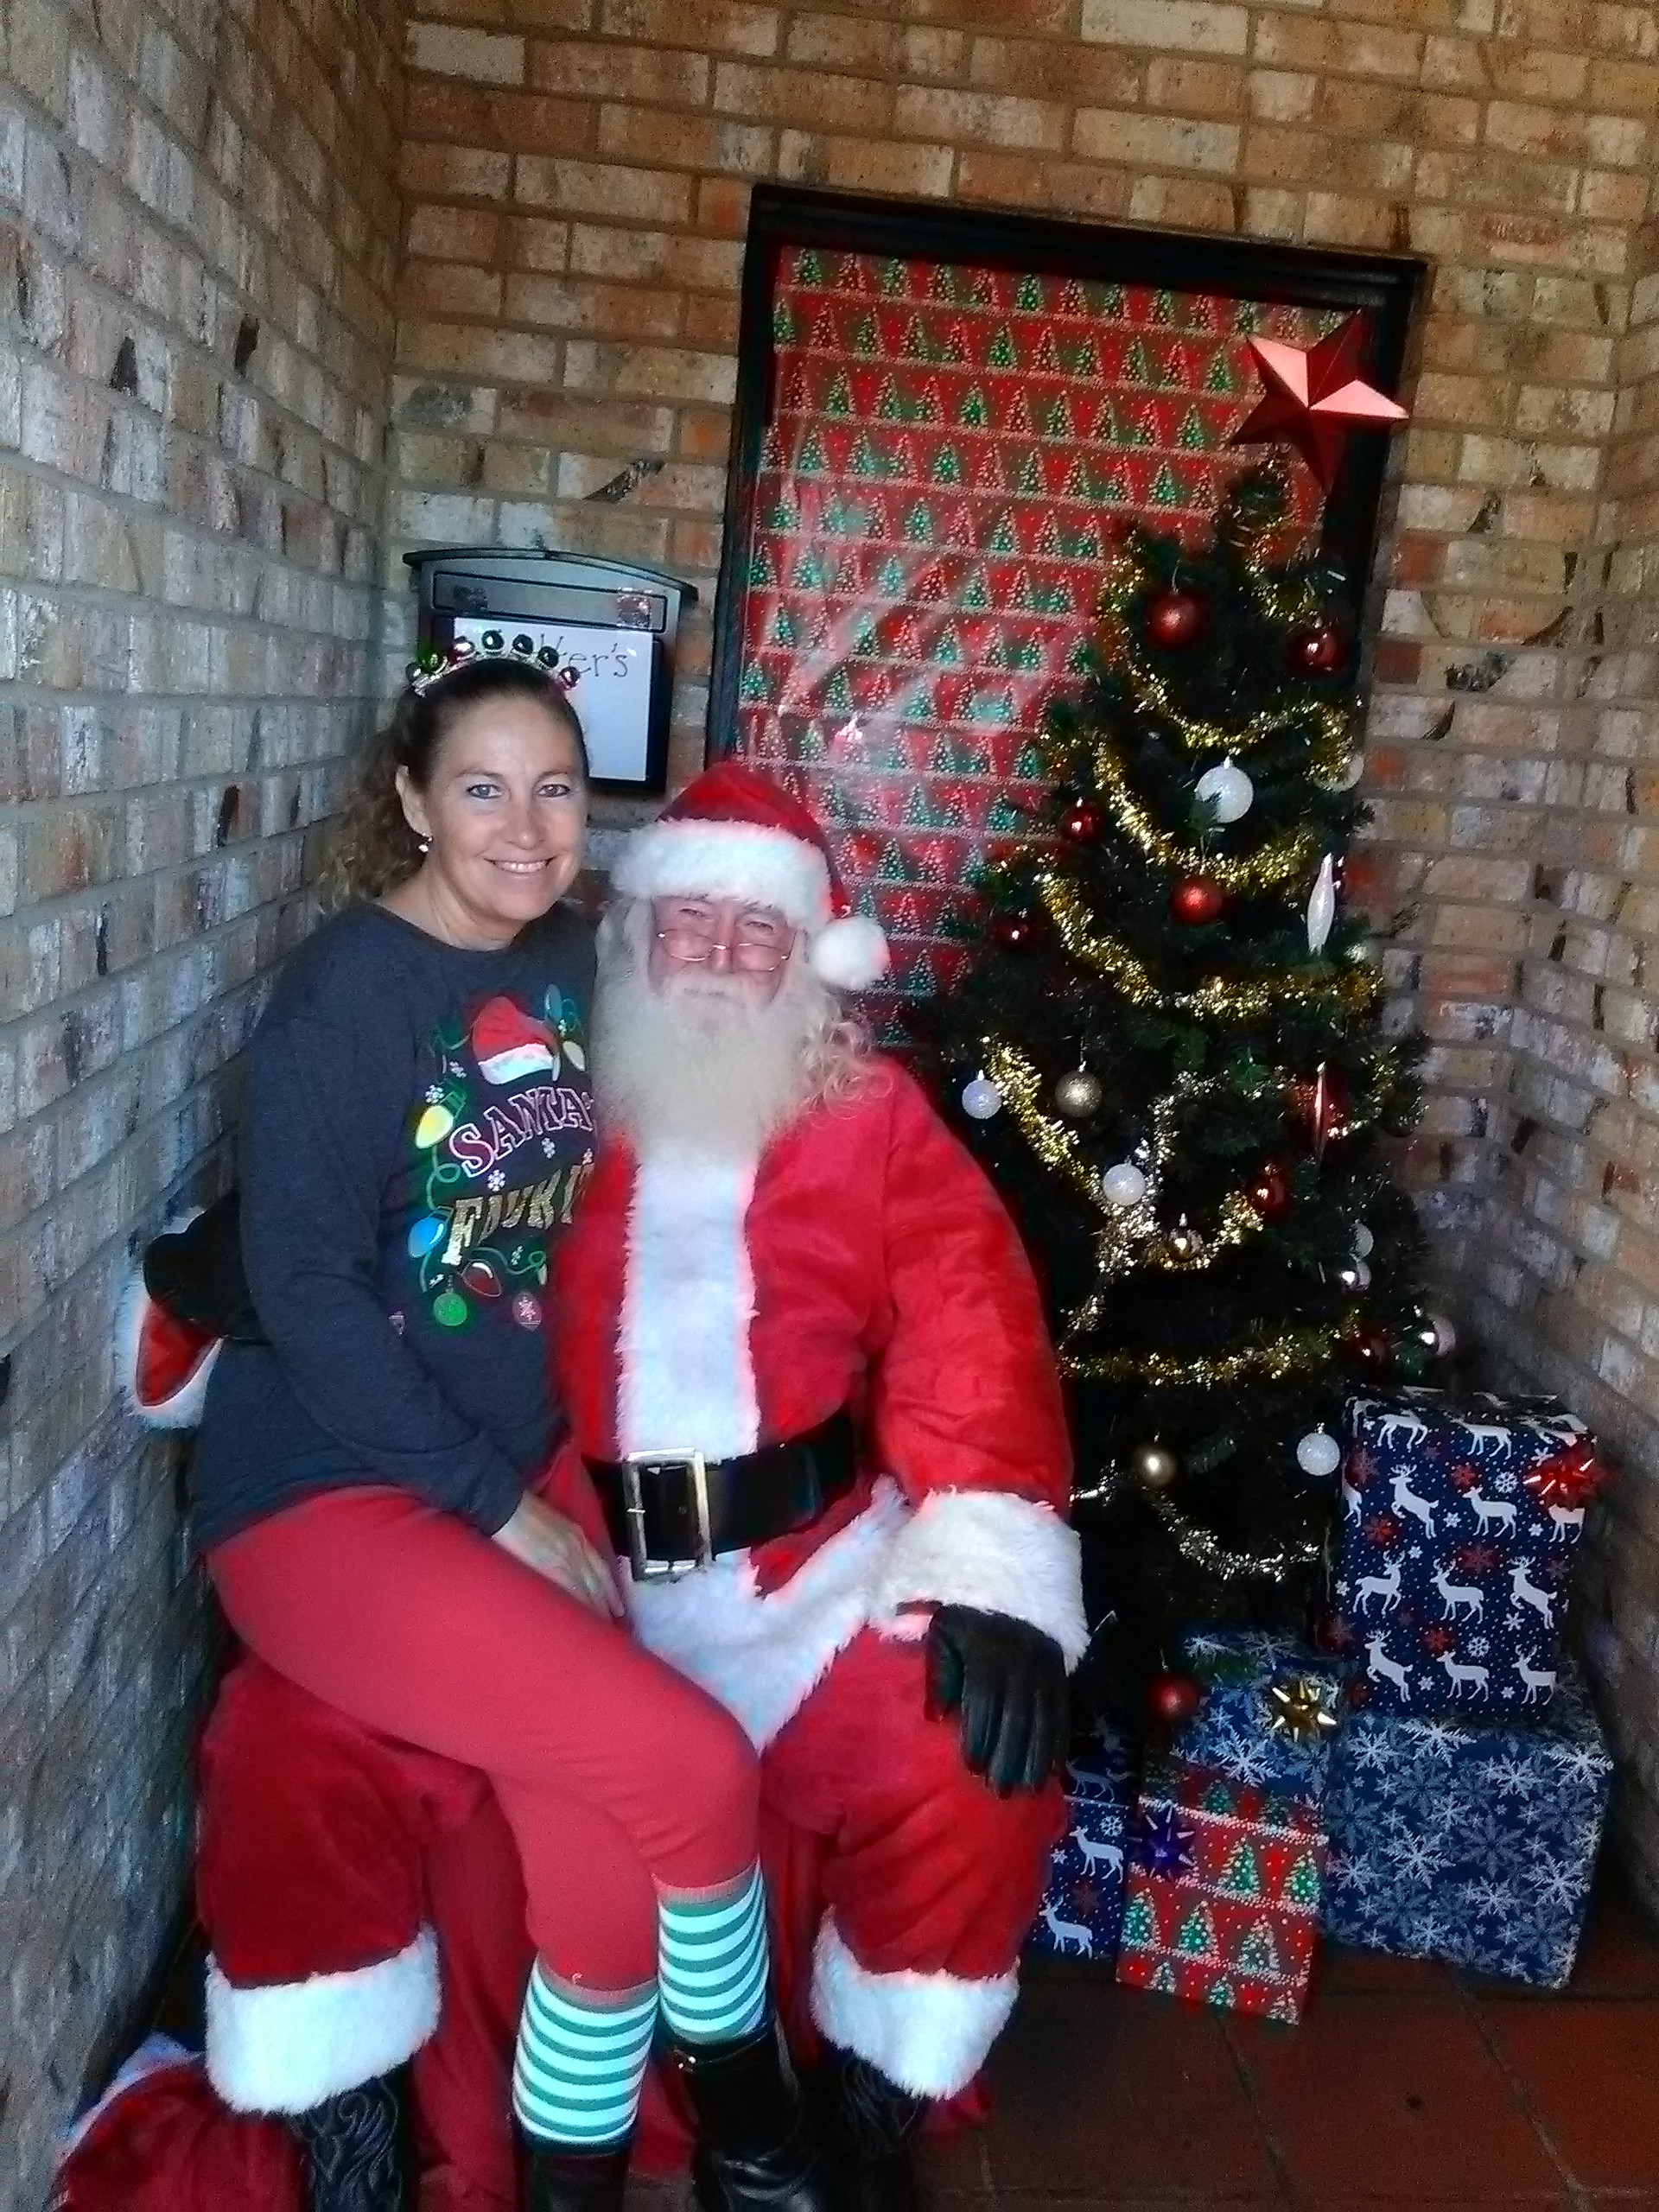 Santa Claus with Mrs. Claus